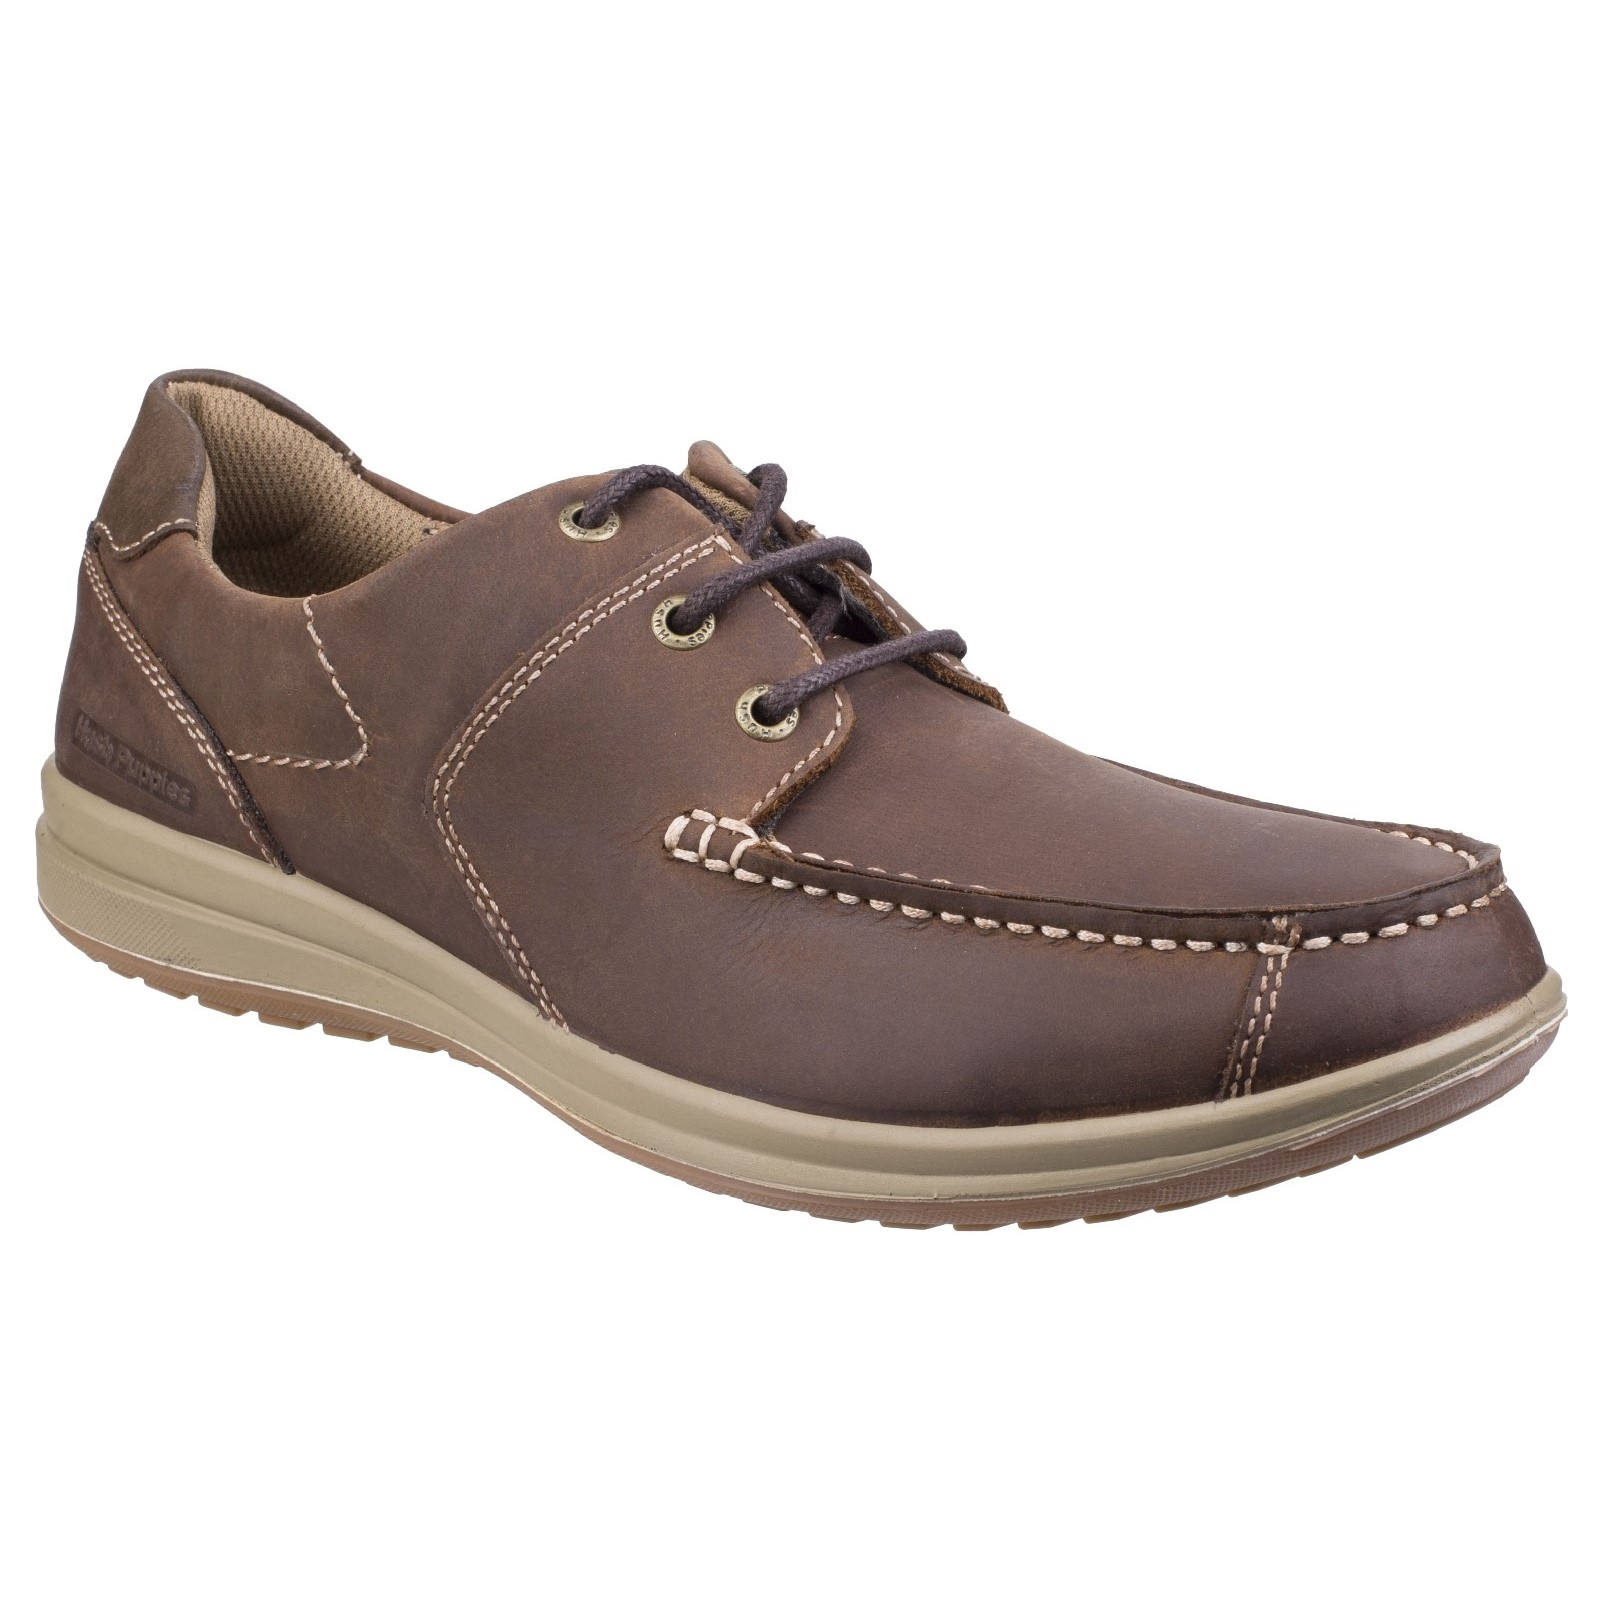 Hush Puppies Mens Runner Moccasin Lace Up zapatos